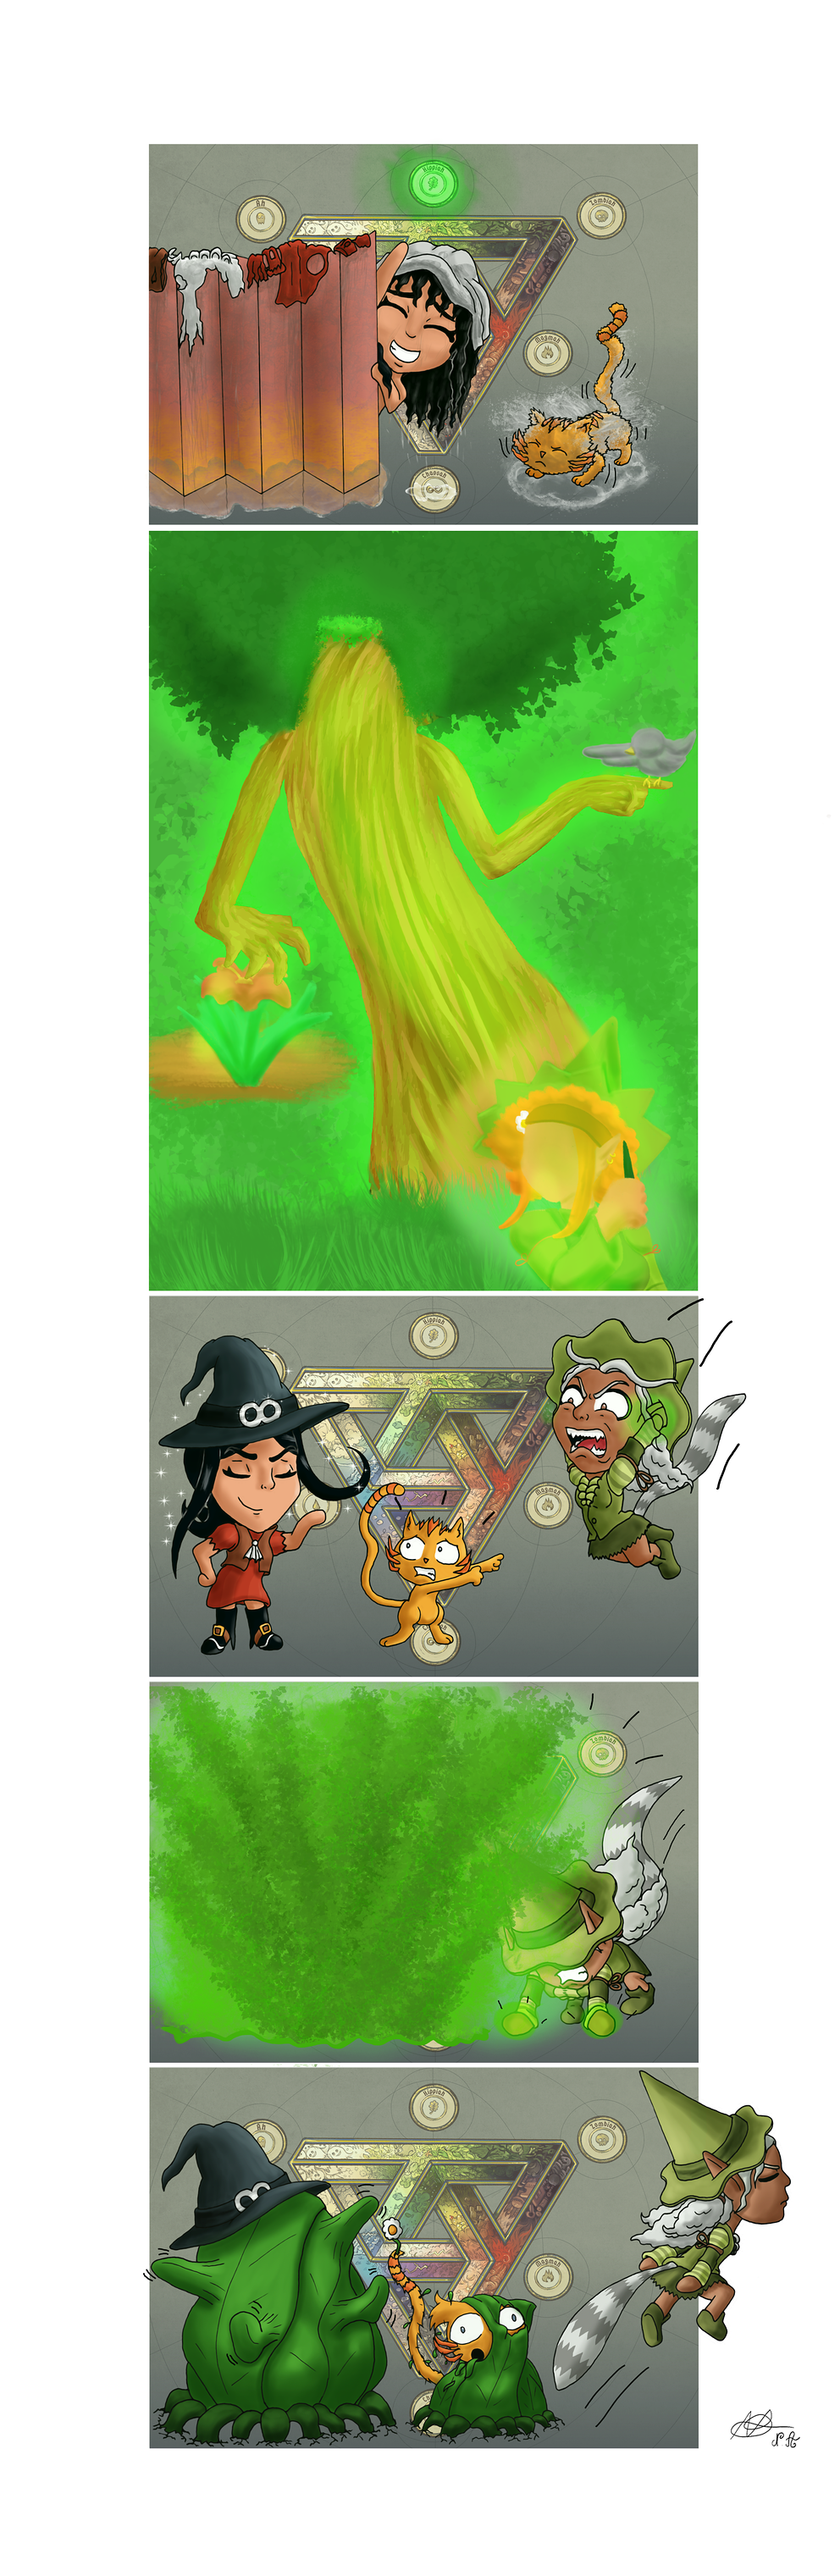 img/18/gfx_Pepper-and-Carrot-MINI_by_Nicolas_Artance_E18.png